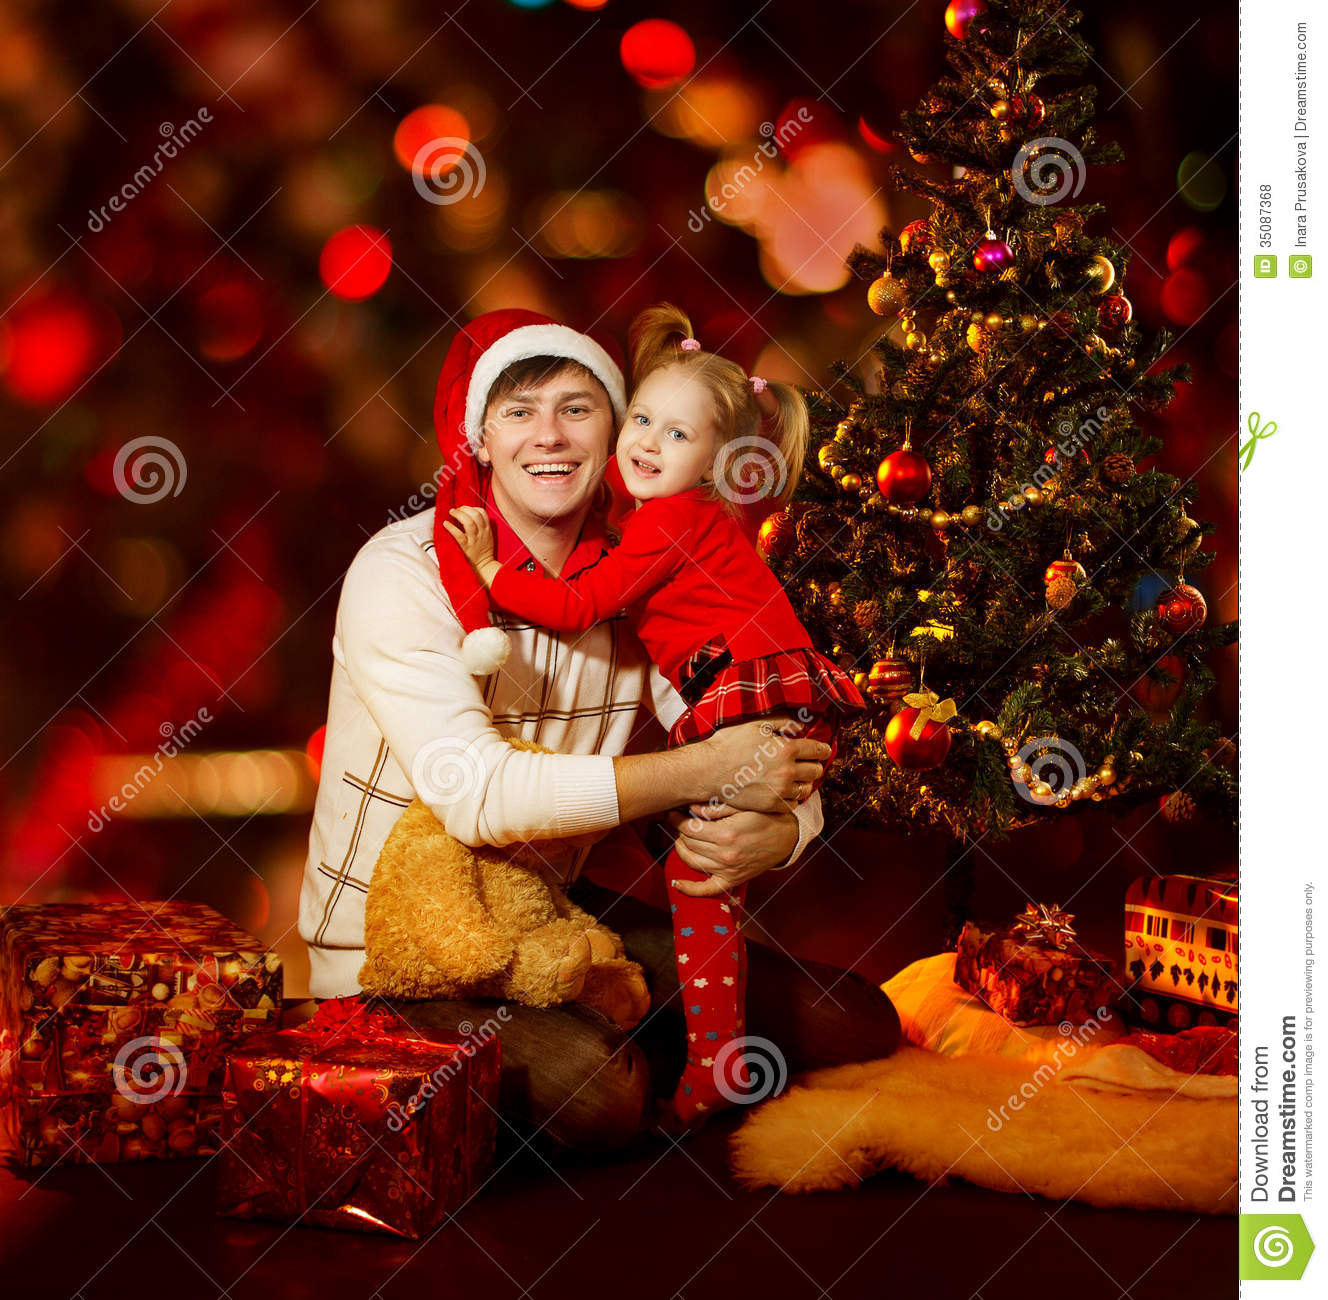 Christmas Family Photo Christmas Family Father And Daughter Child Under Xmas Tree Red